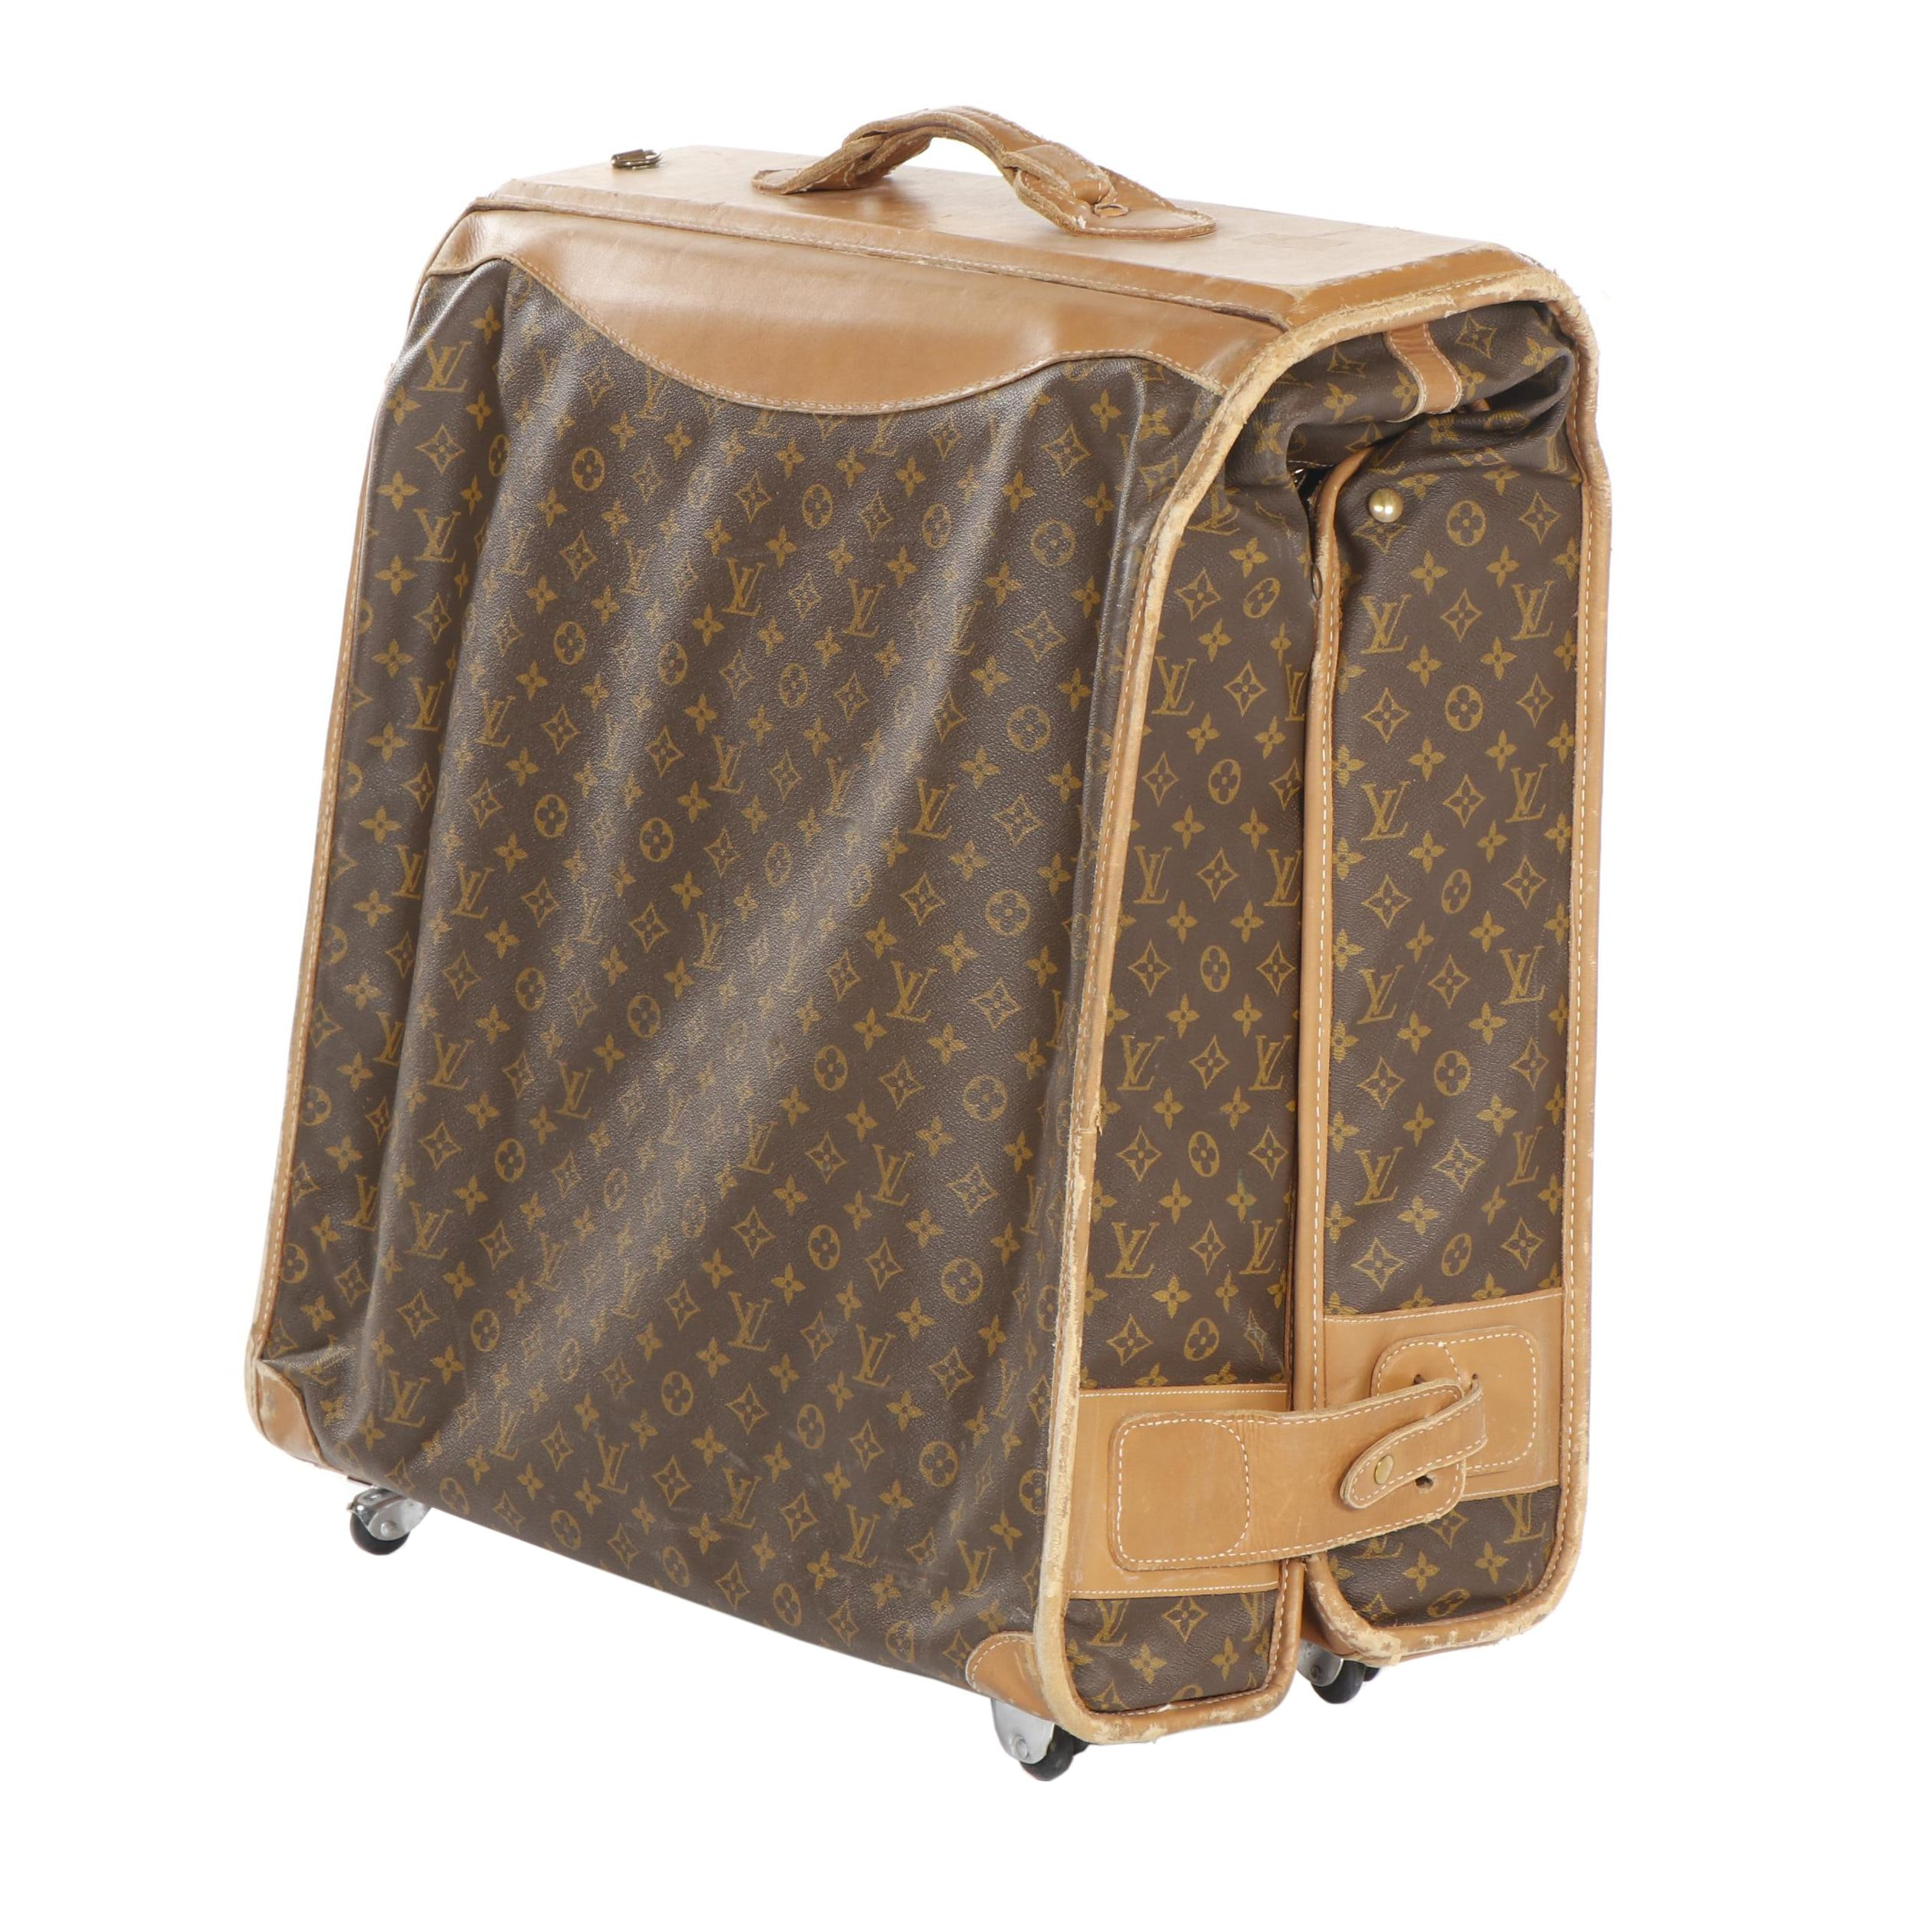 Louis Vuitton Manufactured by The French Co. Garment Bag, U.S.A